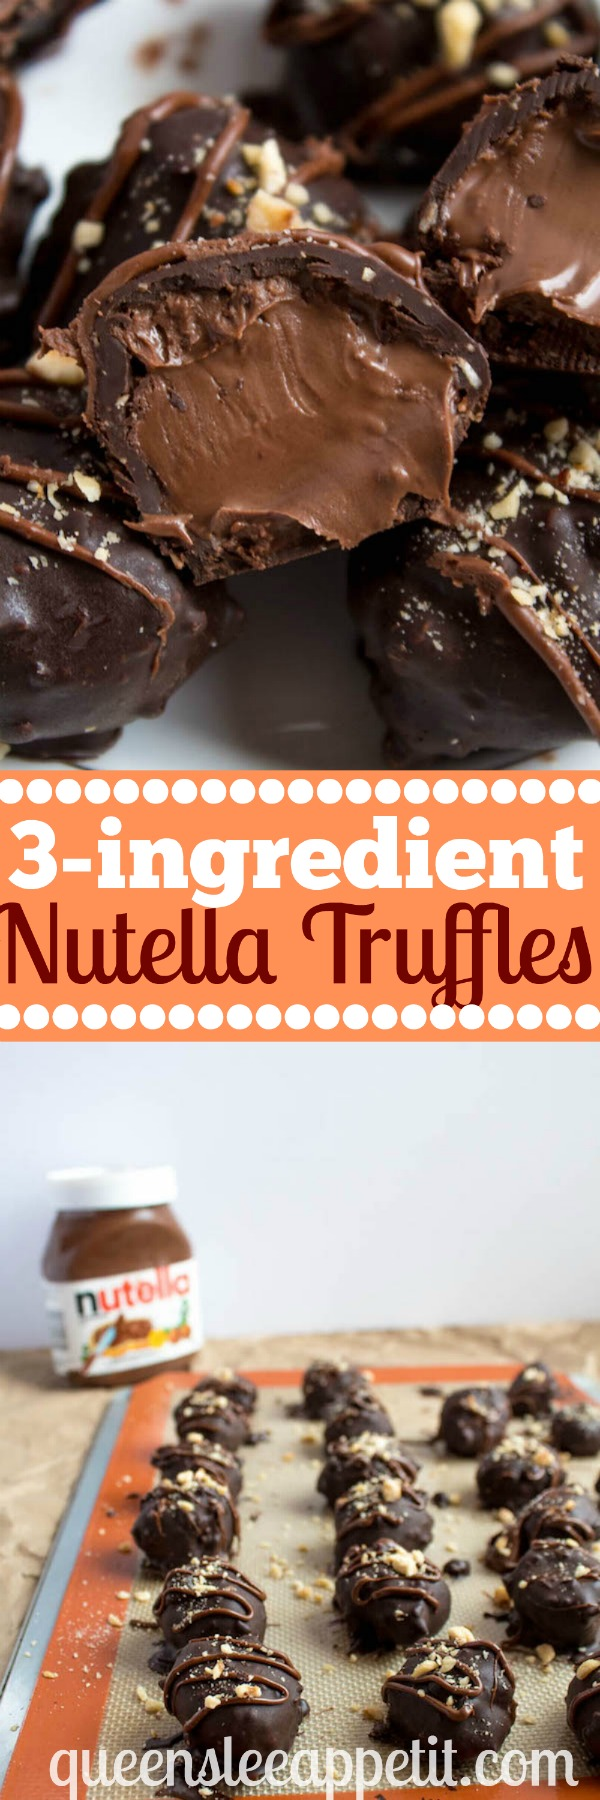 Delectable chocolate hazelnut truffles with an irresistibly smooth Nutella center. These melt-in-your-mouth Nutella Truffles are an upgrade from eating spoonfuls of Nutella straight from the jar!